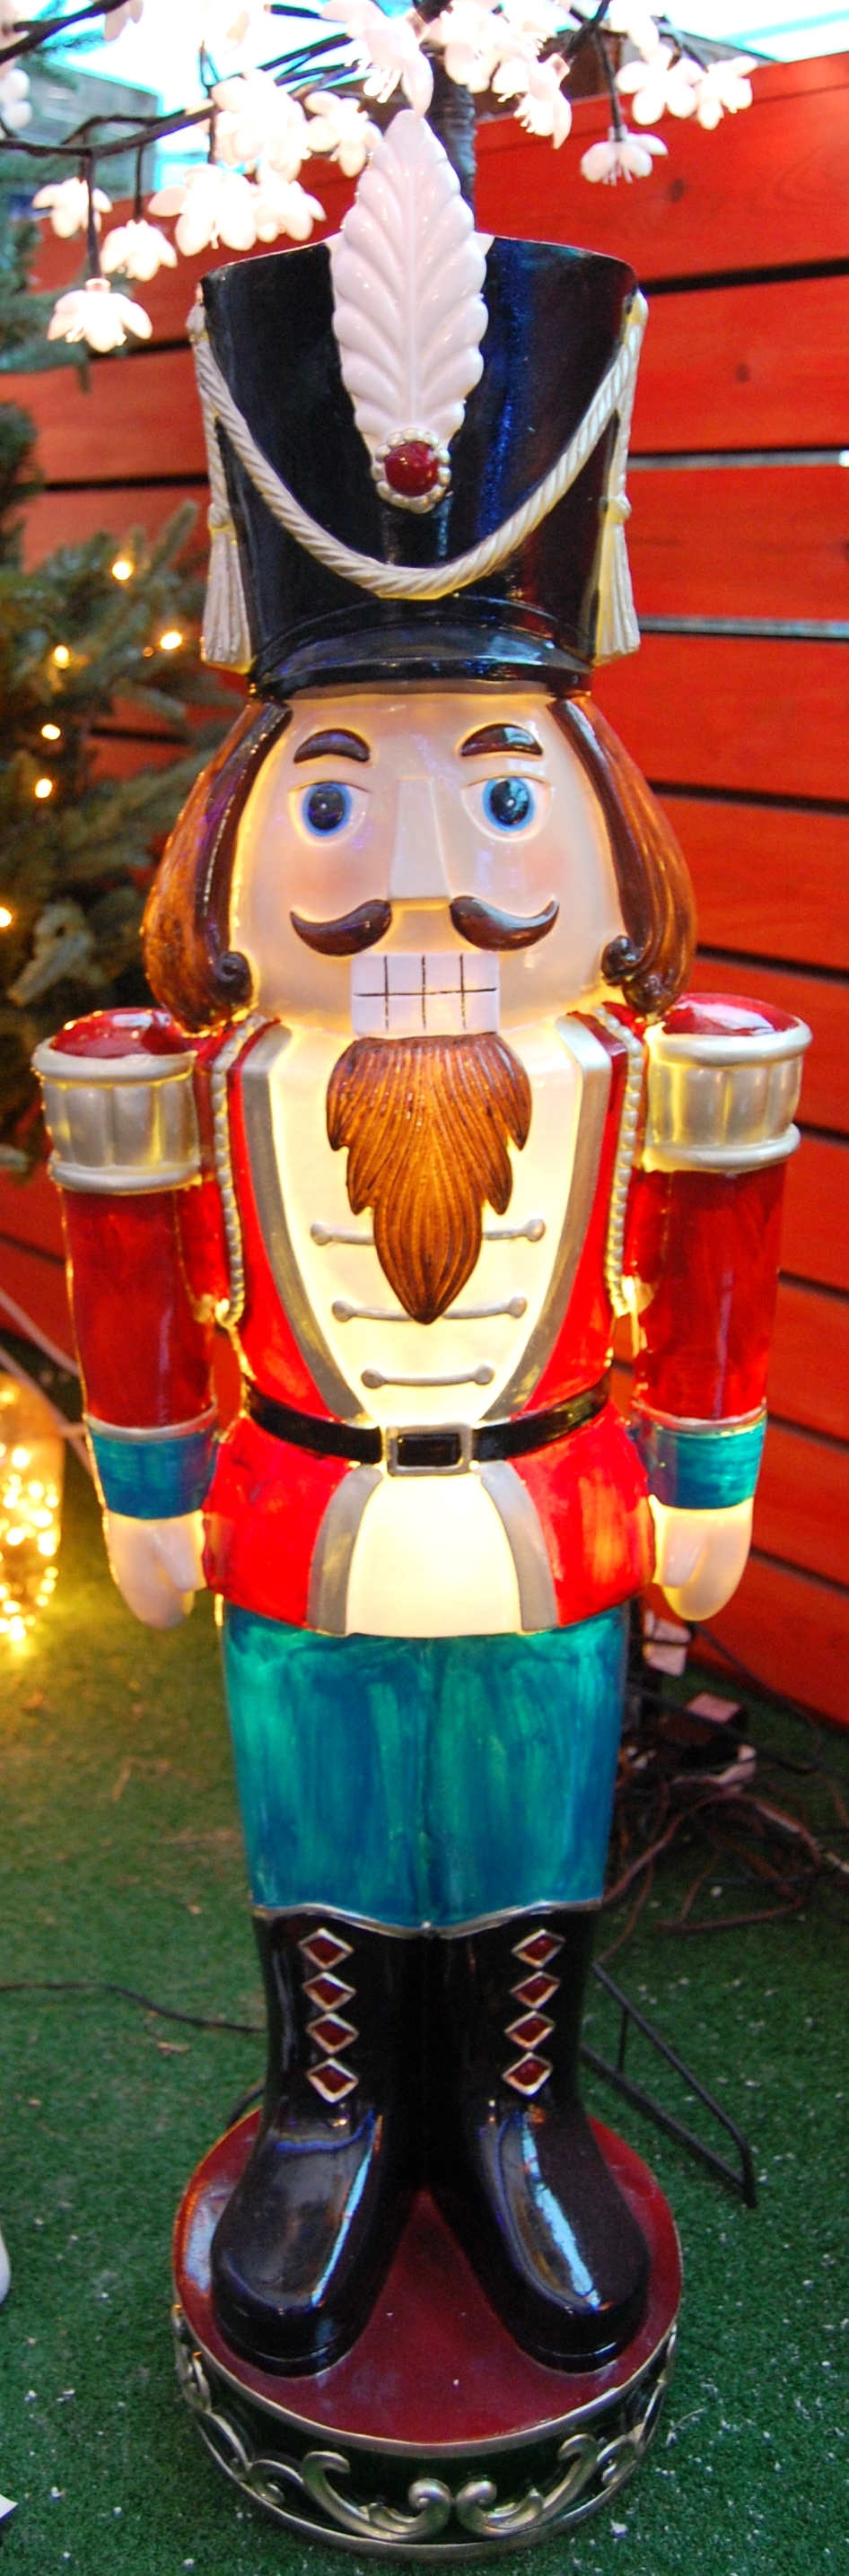 Newest Coggeshall Led Lighted Market Umbrellas With Large Nutcracker With Light 92Cmfountasia (View 14 of 20)